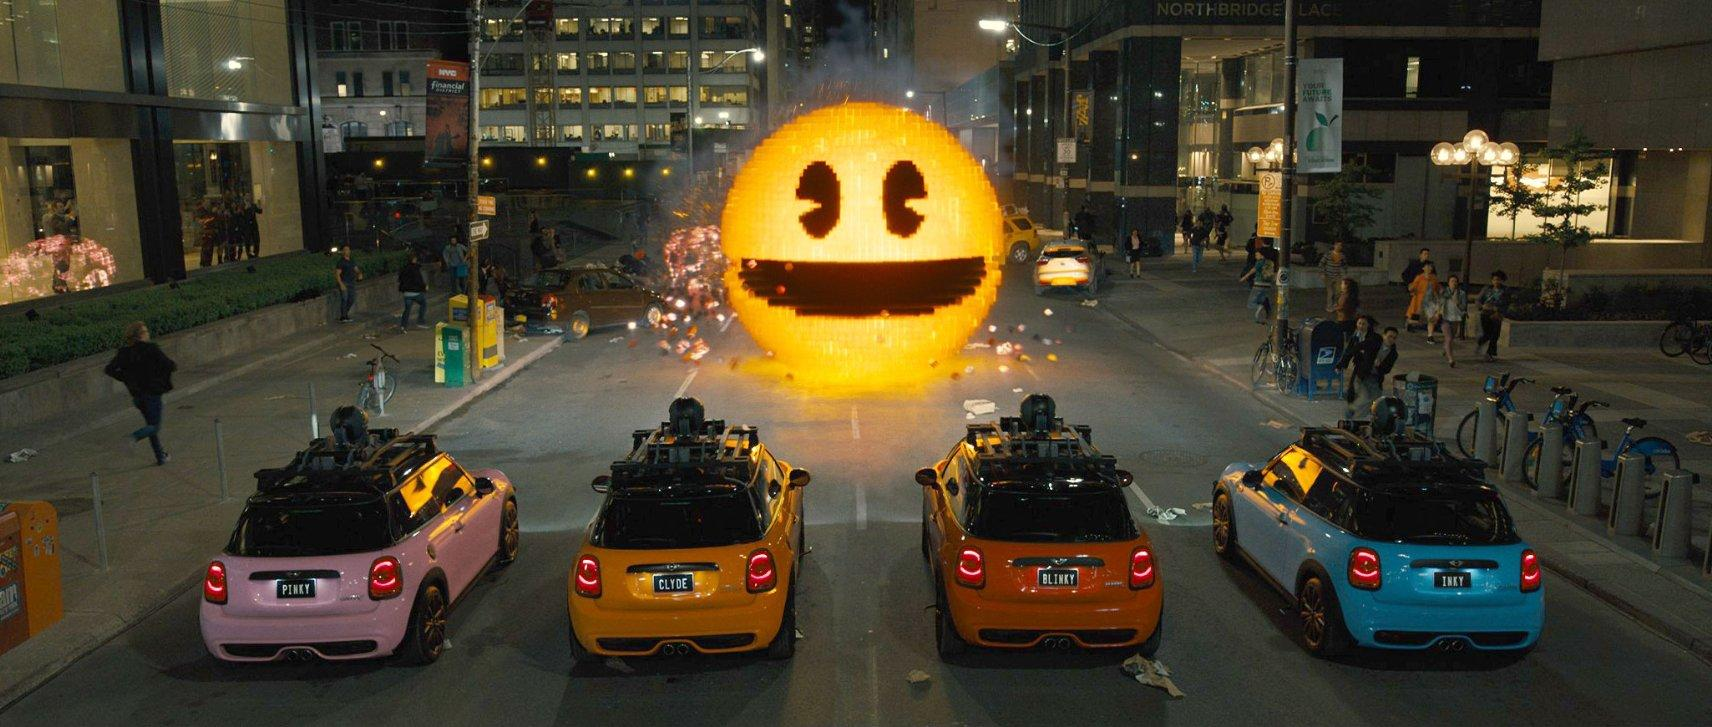 Pac-Man is just one of the many 1980s-era video games come to life in Adam Sandler's newest film,